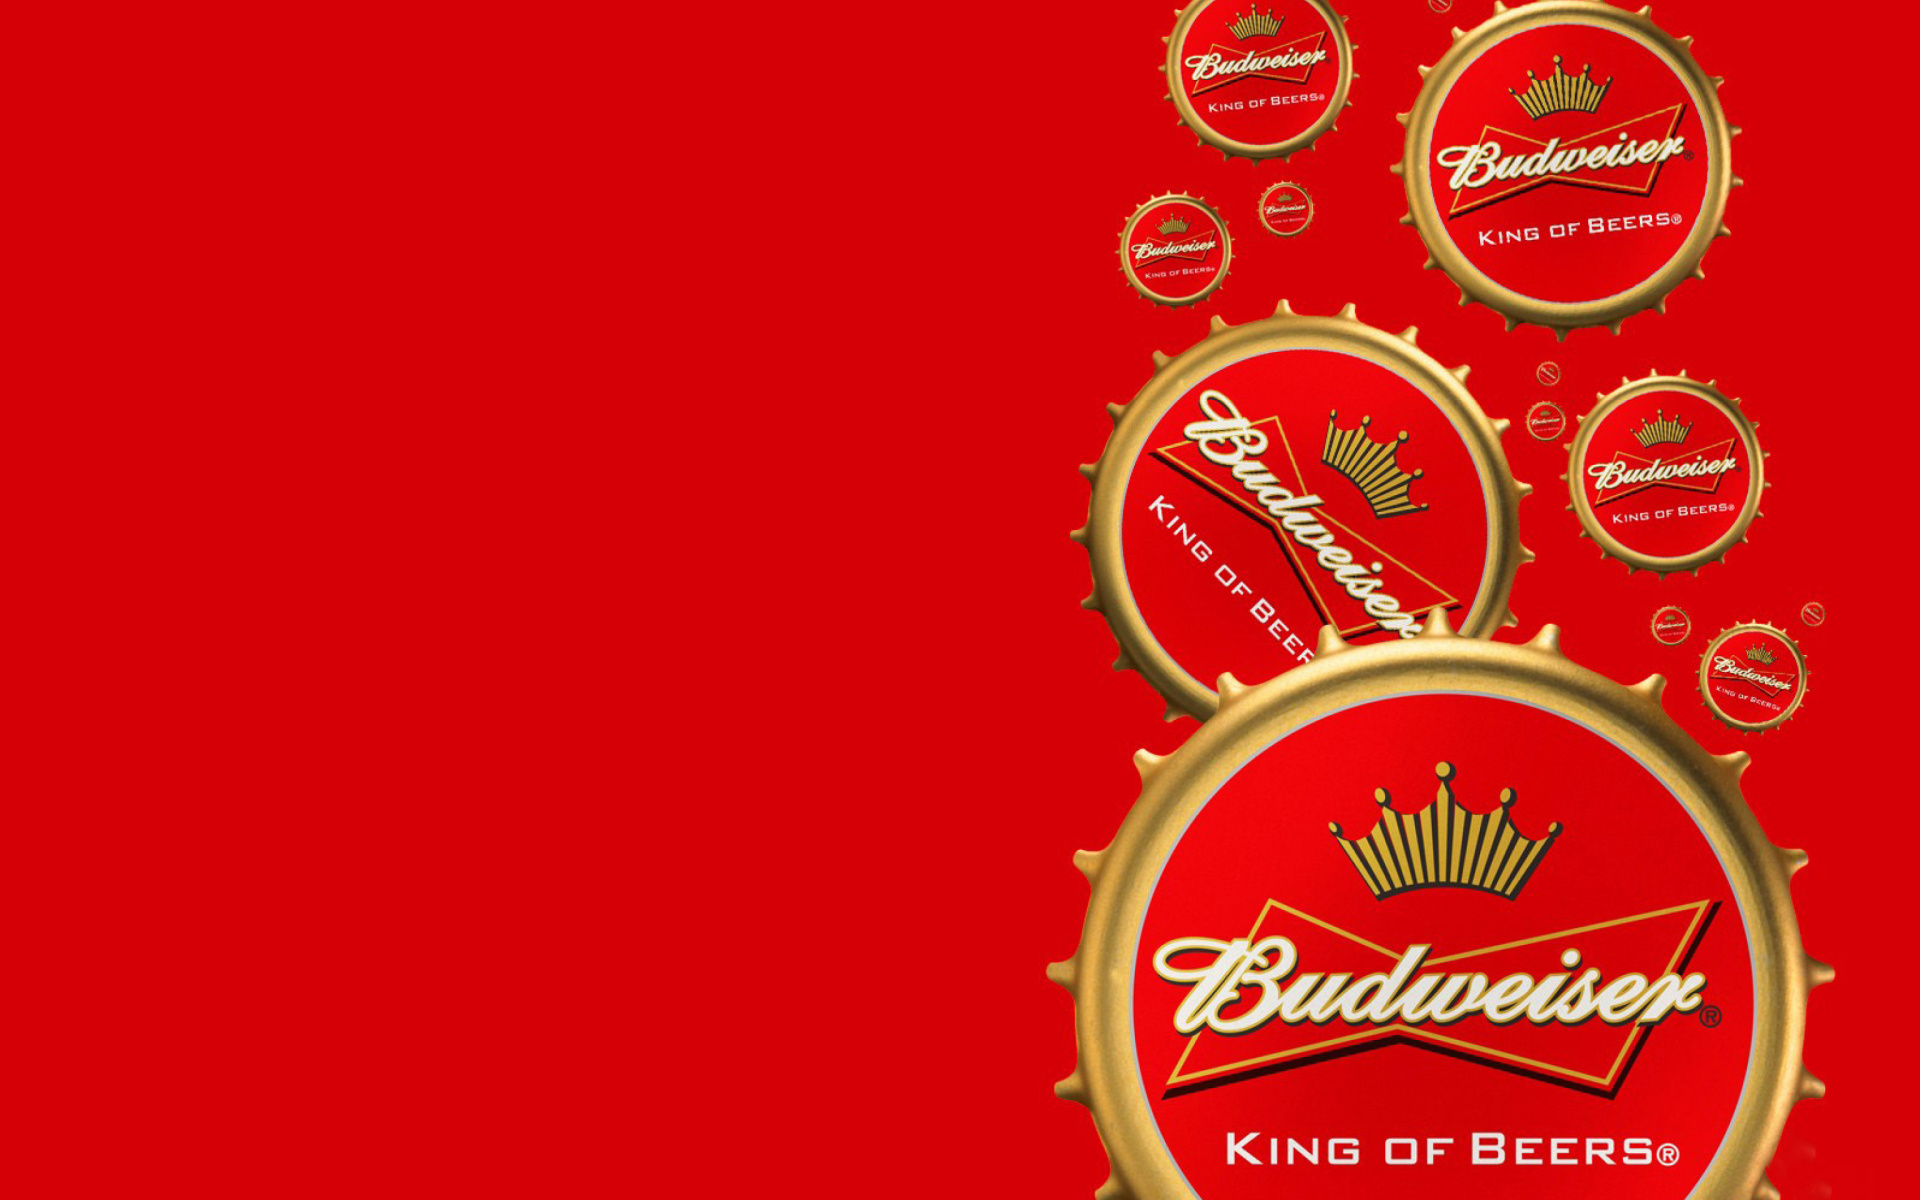 budweiser wallpapers high quality download free